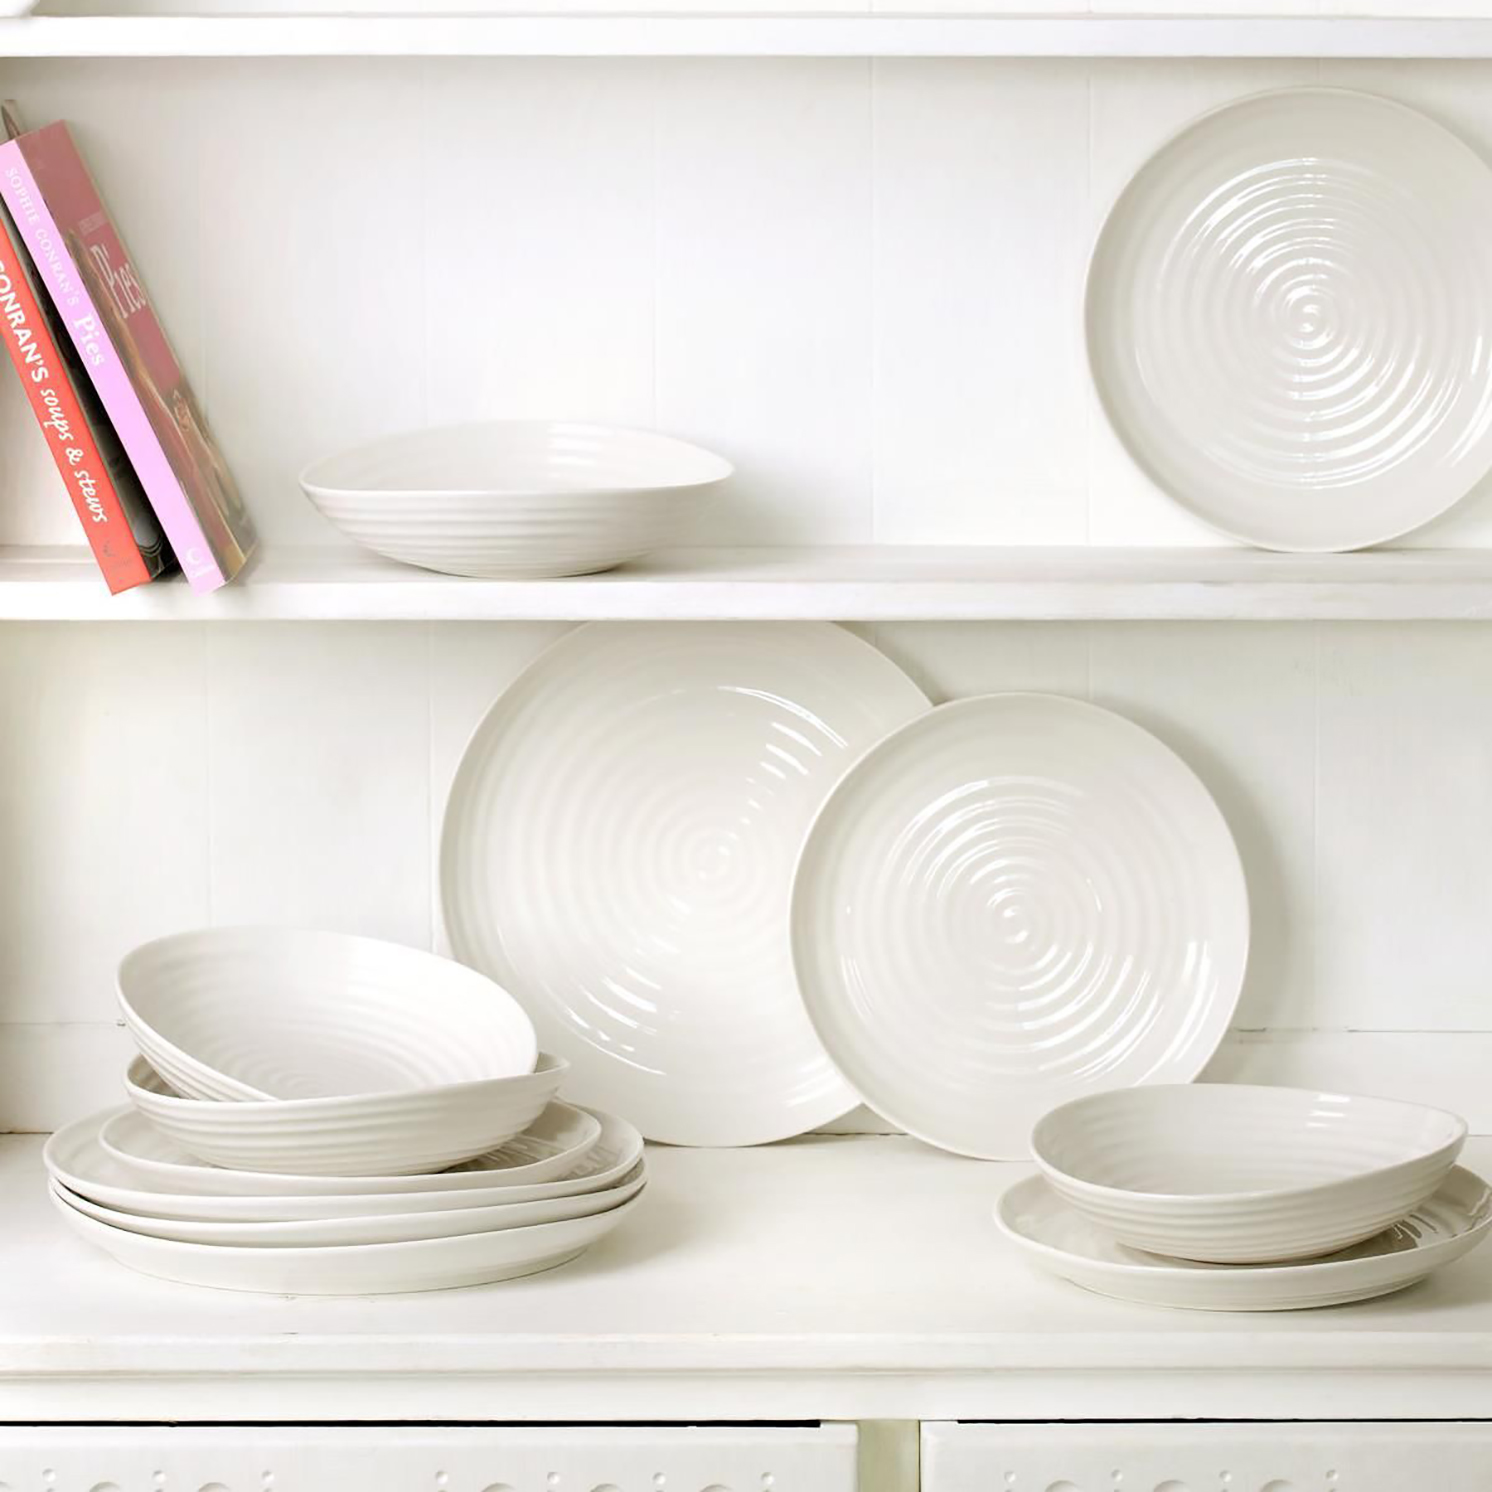 Sophie Conran for Portmeirion – Set of 4 White Noodle Bowls in Gift Box